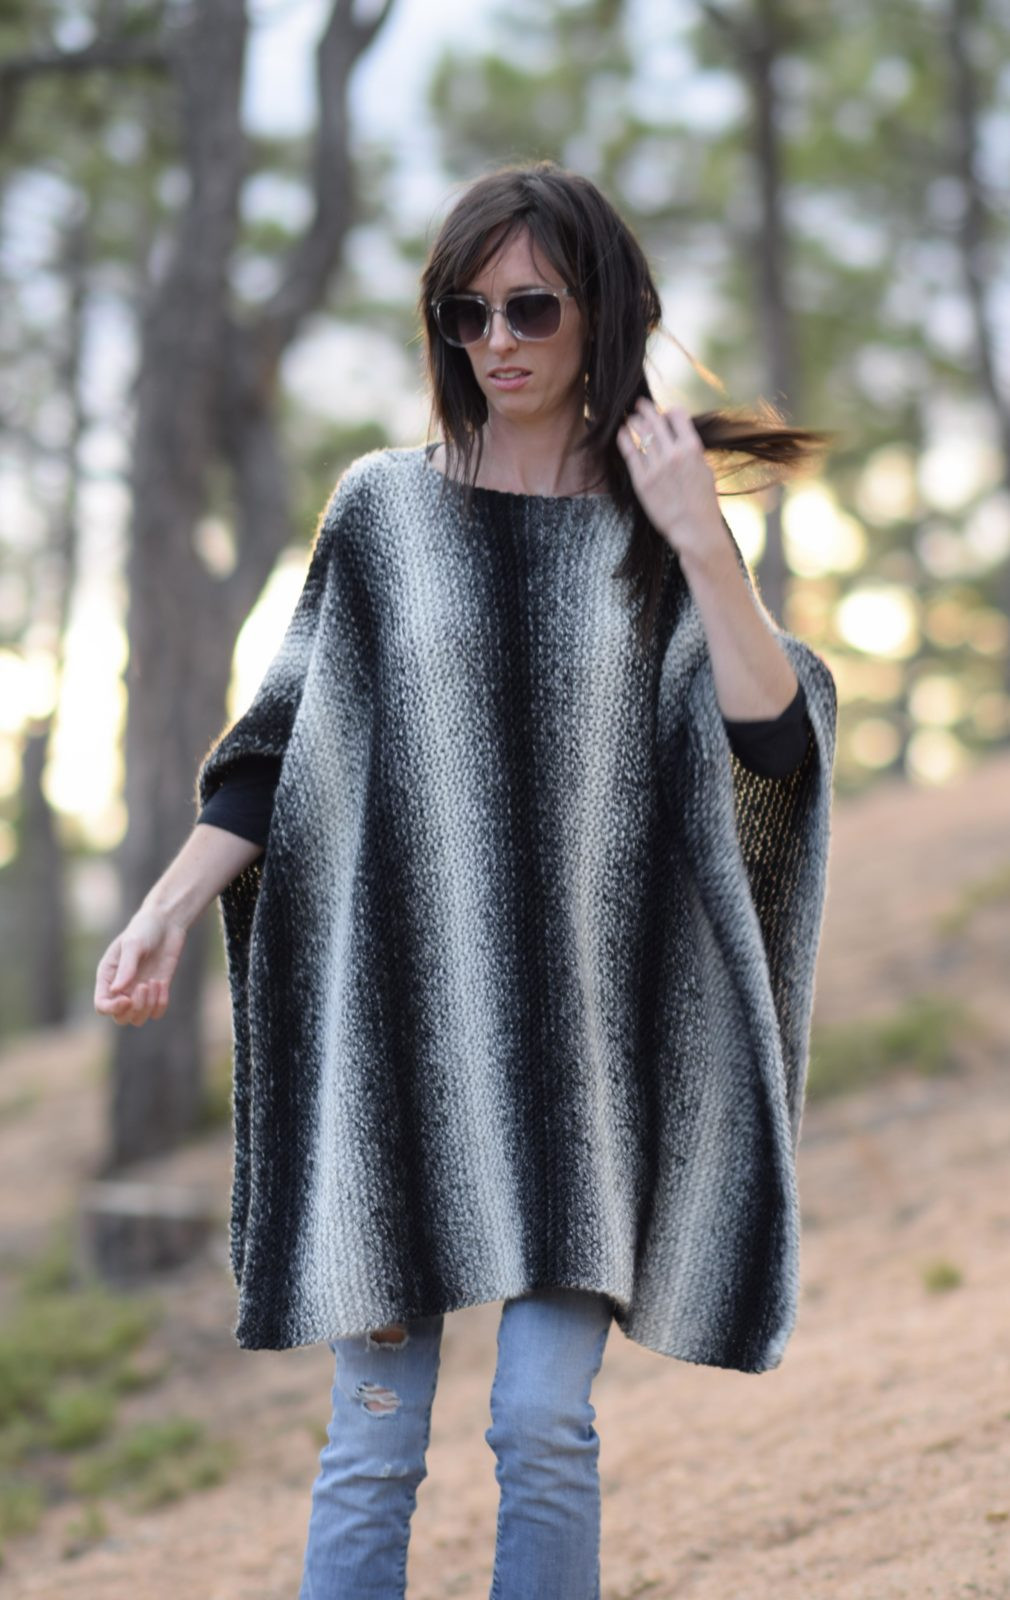 Luxury aspen Relaxed Knit Poncho Pattern – Mama In A Stitch Ponco Crochet Of Great 49 Images Ponco Crochet